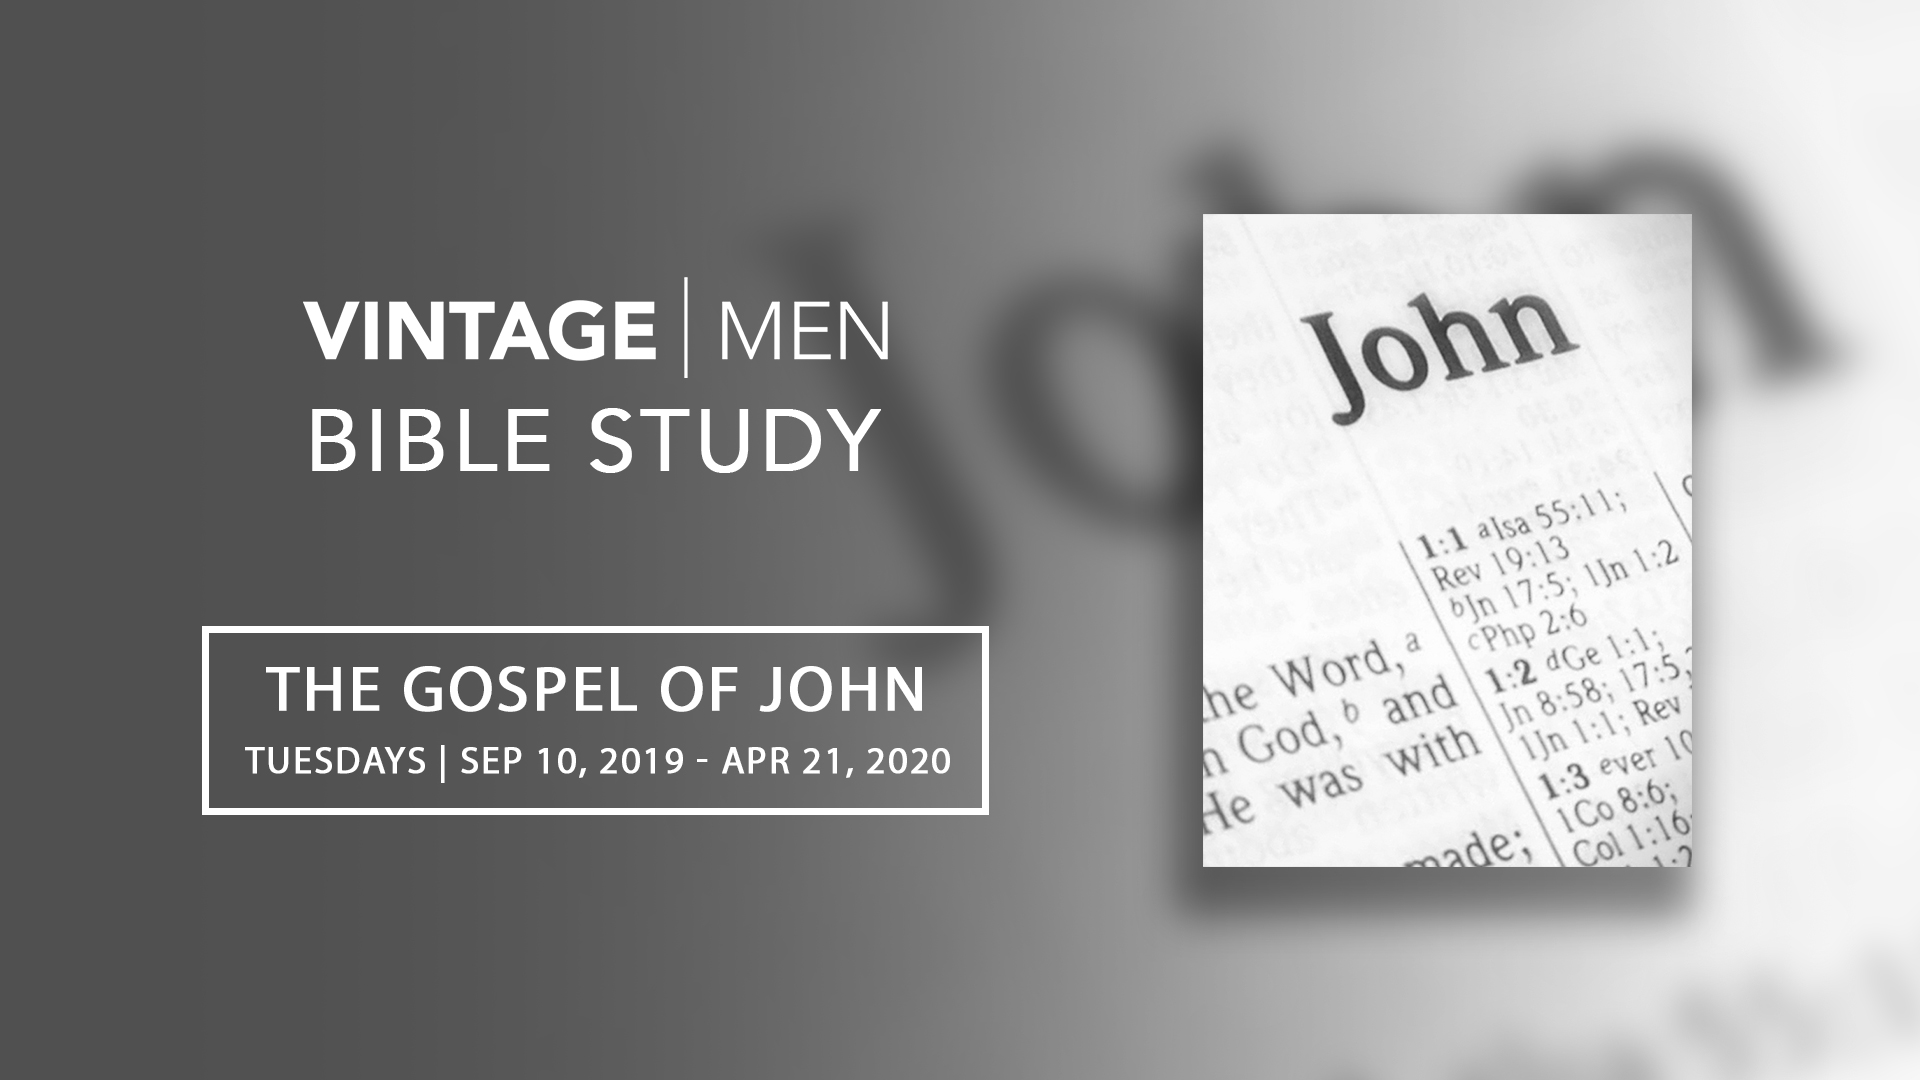 Men_Book_BibleStudy.jpg